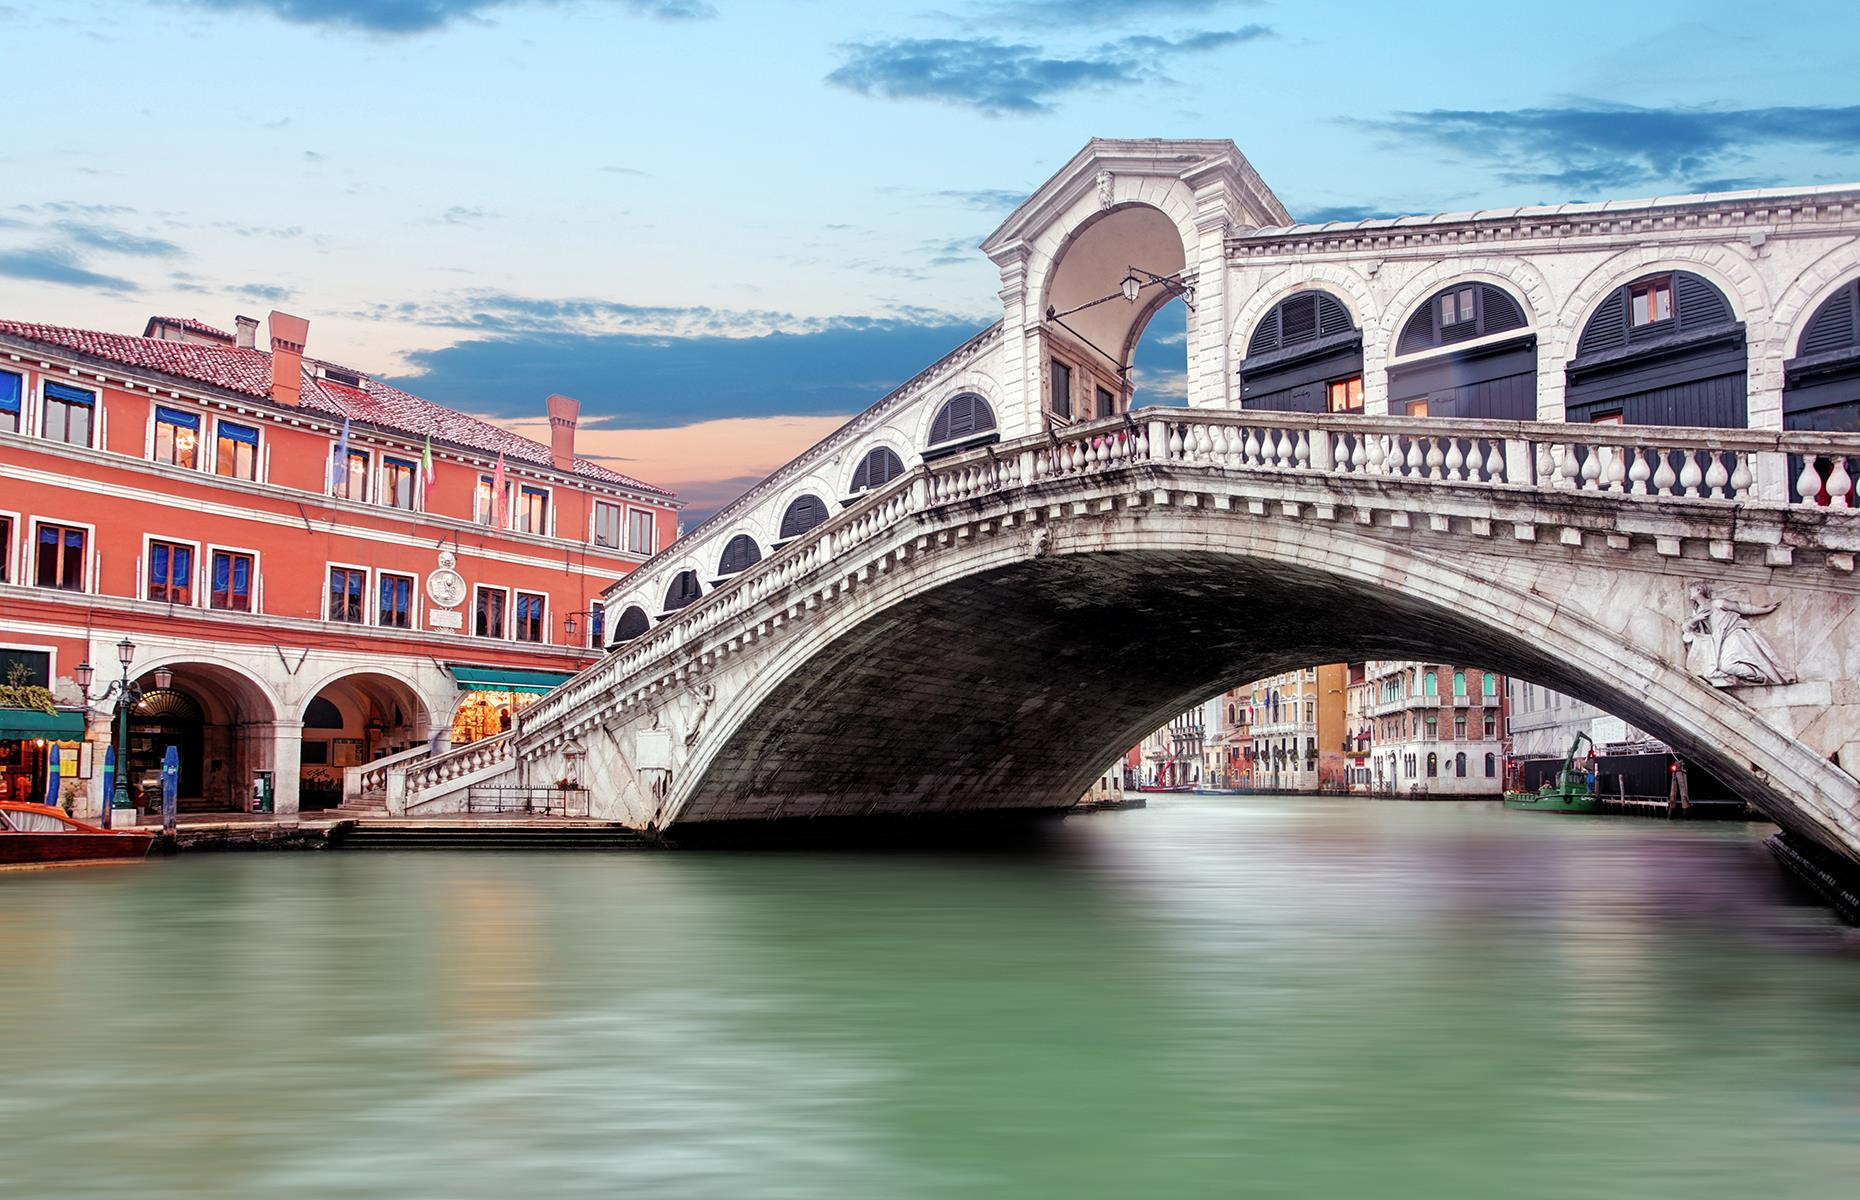 Slide 21 of 31: Another symbol of Venice is the 16th-century Rialto Bridge (pictured) – or Ponte di Rialto – that crosses over the narrowest point of Venice's Grand Canal and is held up as a great feat of Renaissance-era architecture. An elegant arch complete with stone reliefs, the bridge has been damaged and rebuilt several times, but is still the oldest of the four bridges crossing the Grand Canal.